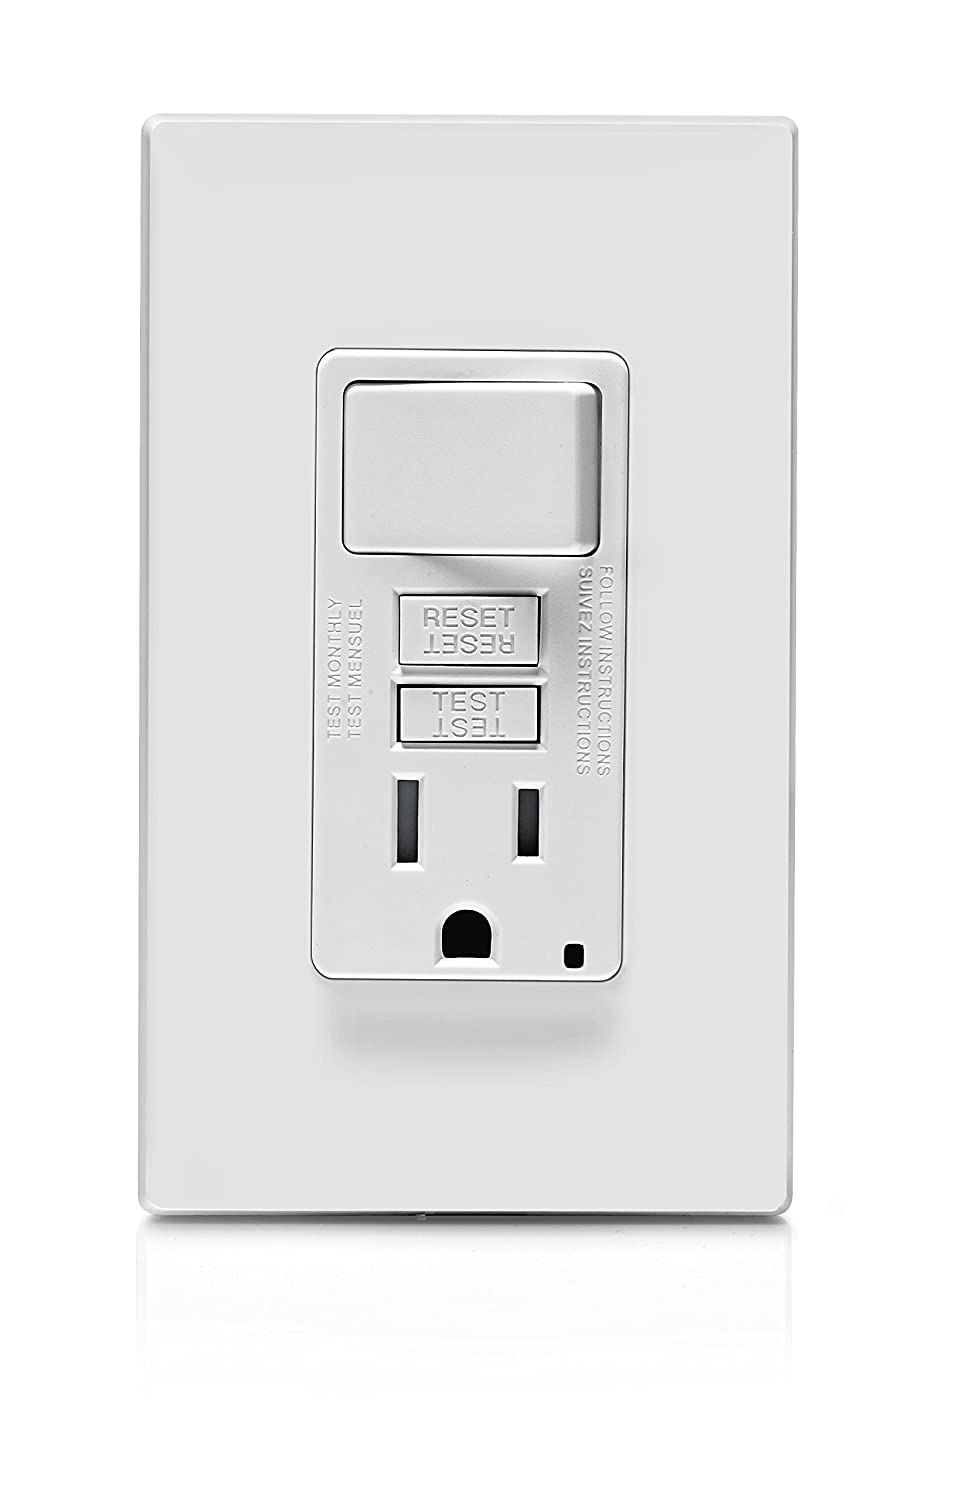 Leviton Gfsw1 W Self Test Smartlockpro Slim Gfci Combination Switch Bination Outlet Wiring Diagram Further Diagrams Tamper Resistant Receptacle With Led Indicator 15 Amp White Gidds 2499319